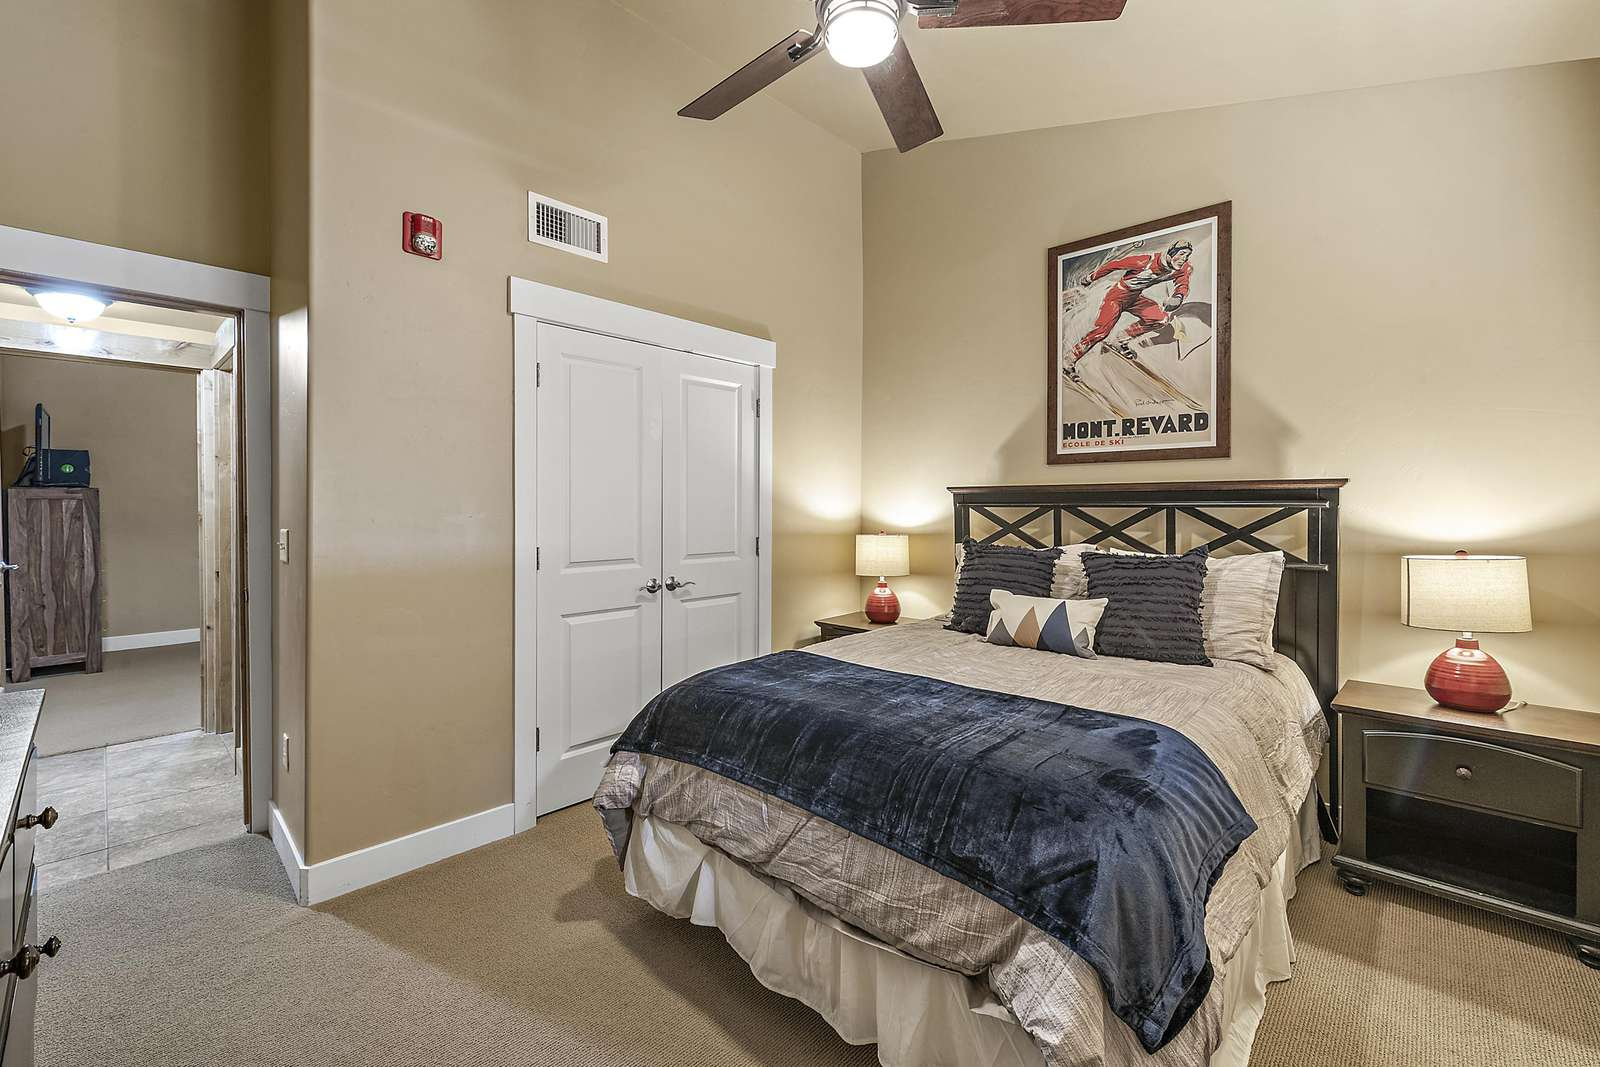 Guest bedroom with spacious closet